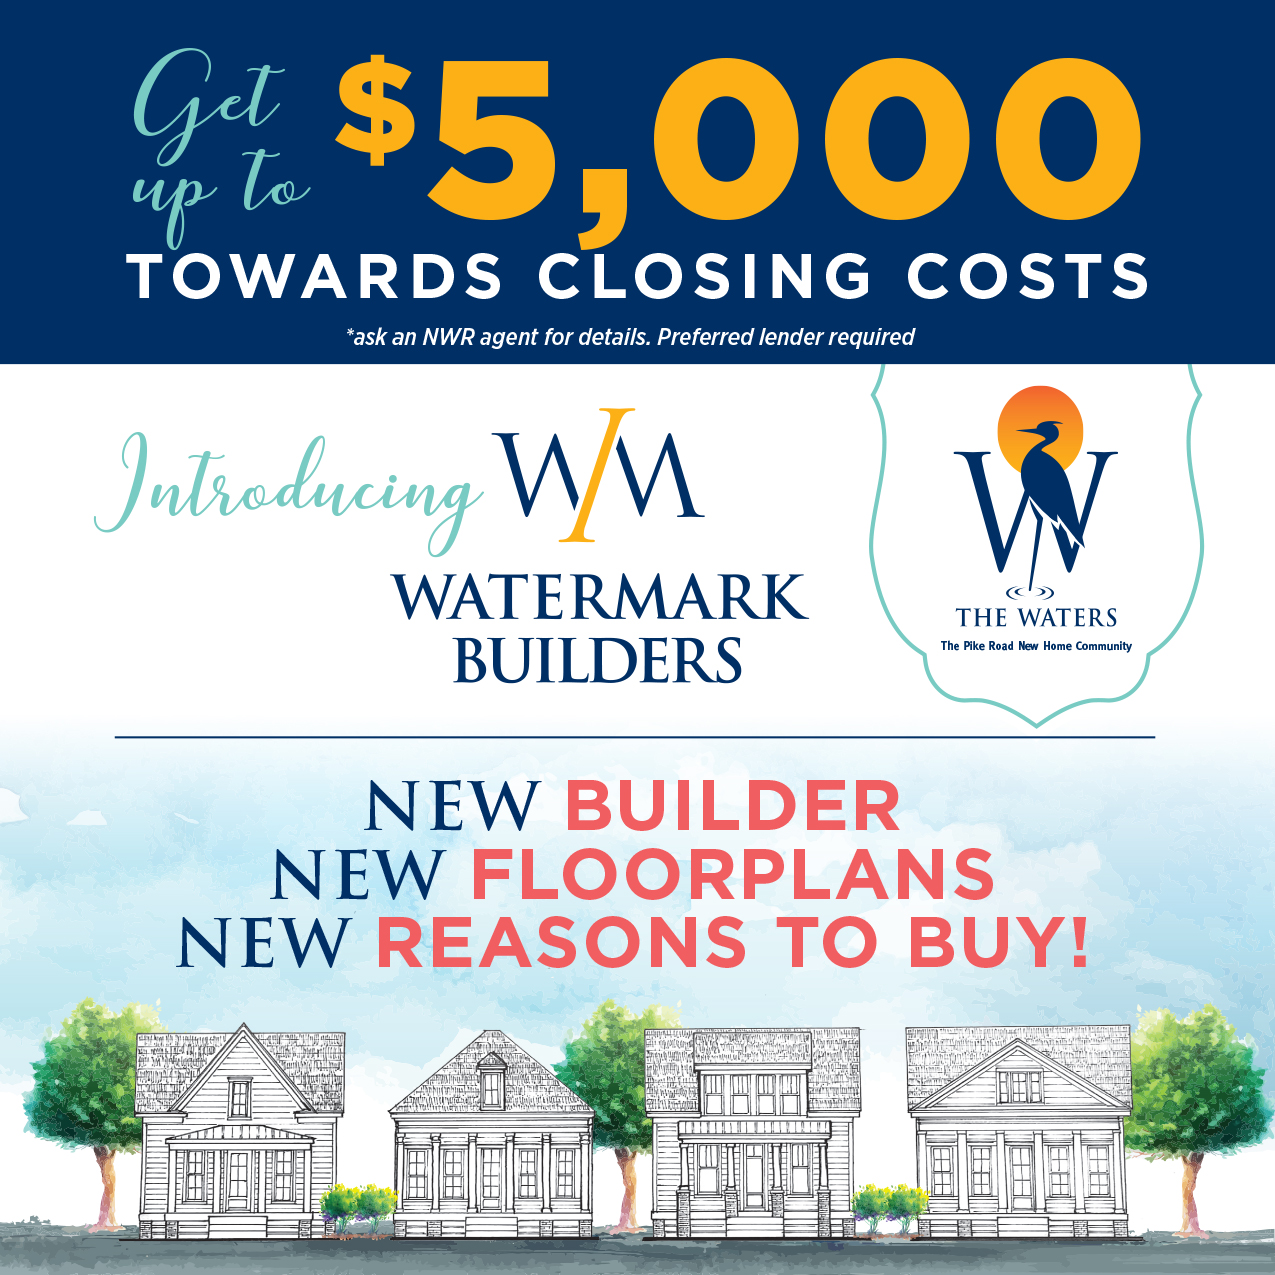 Introducting Watermark Builders at The Waters - Get up to $5,000 towards closing costs. Ask an NWR agent for details.